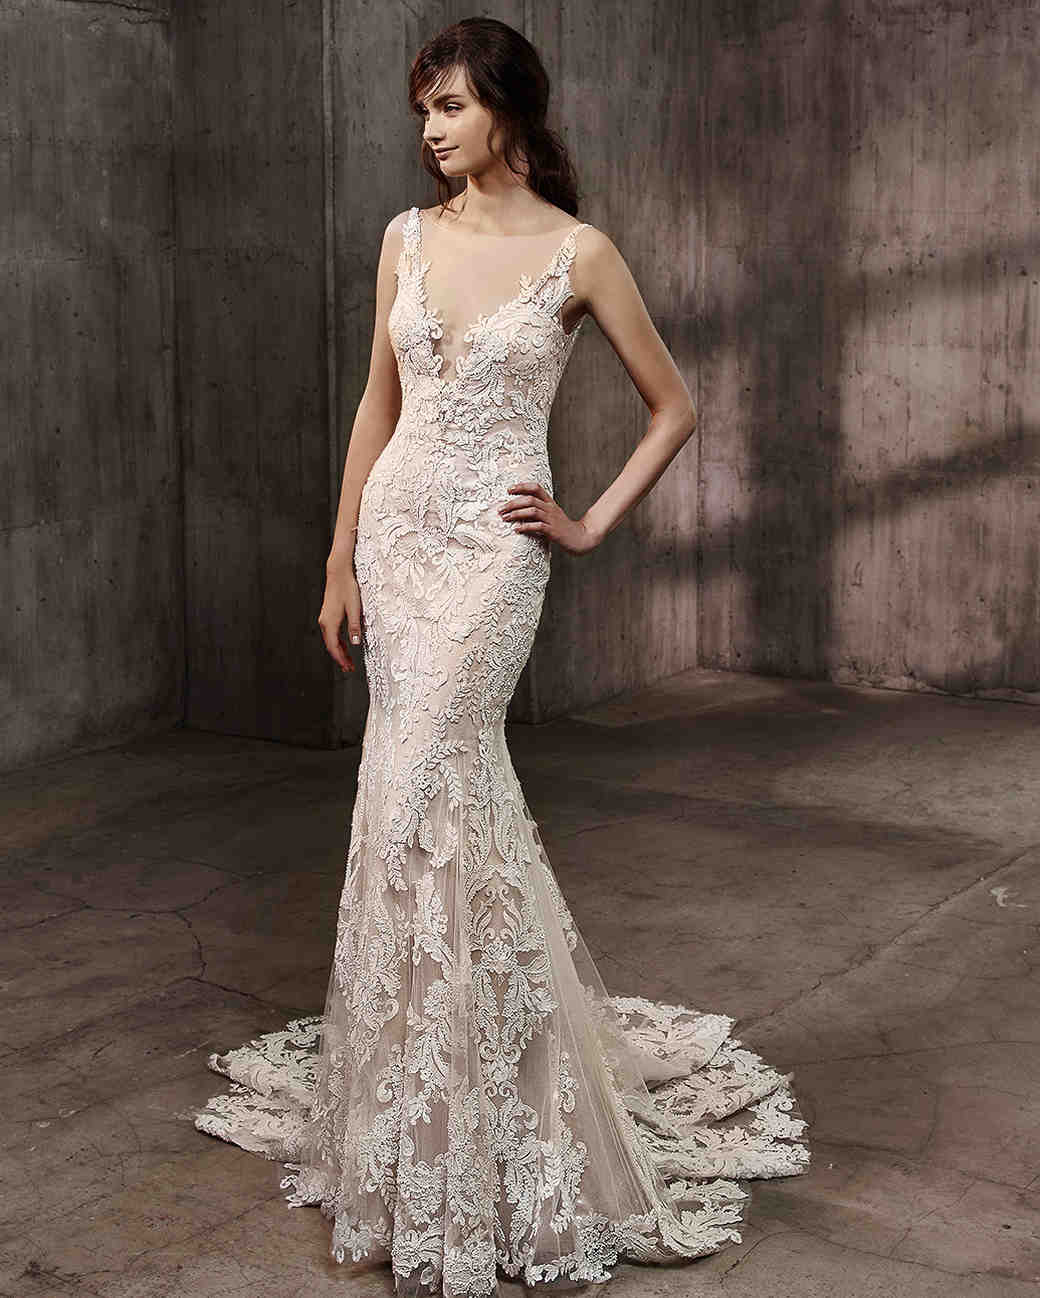 Badgley Mischka 2017 Wedding Dress Collection